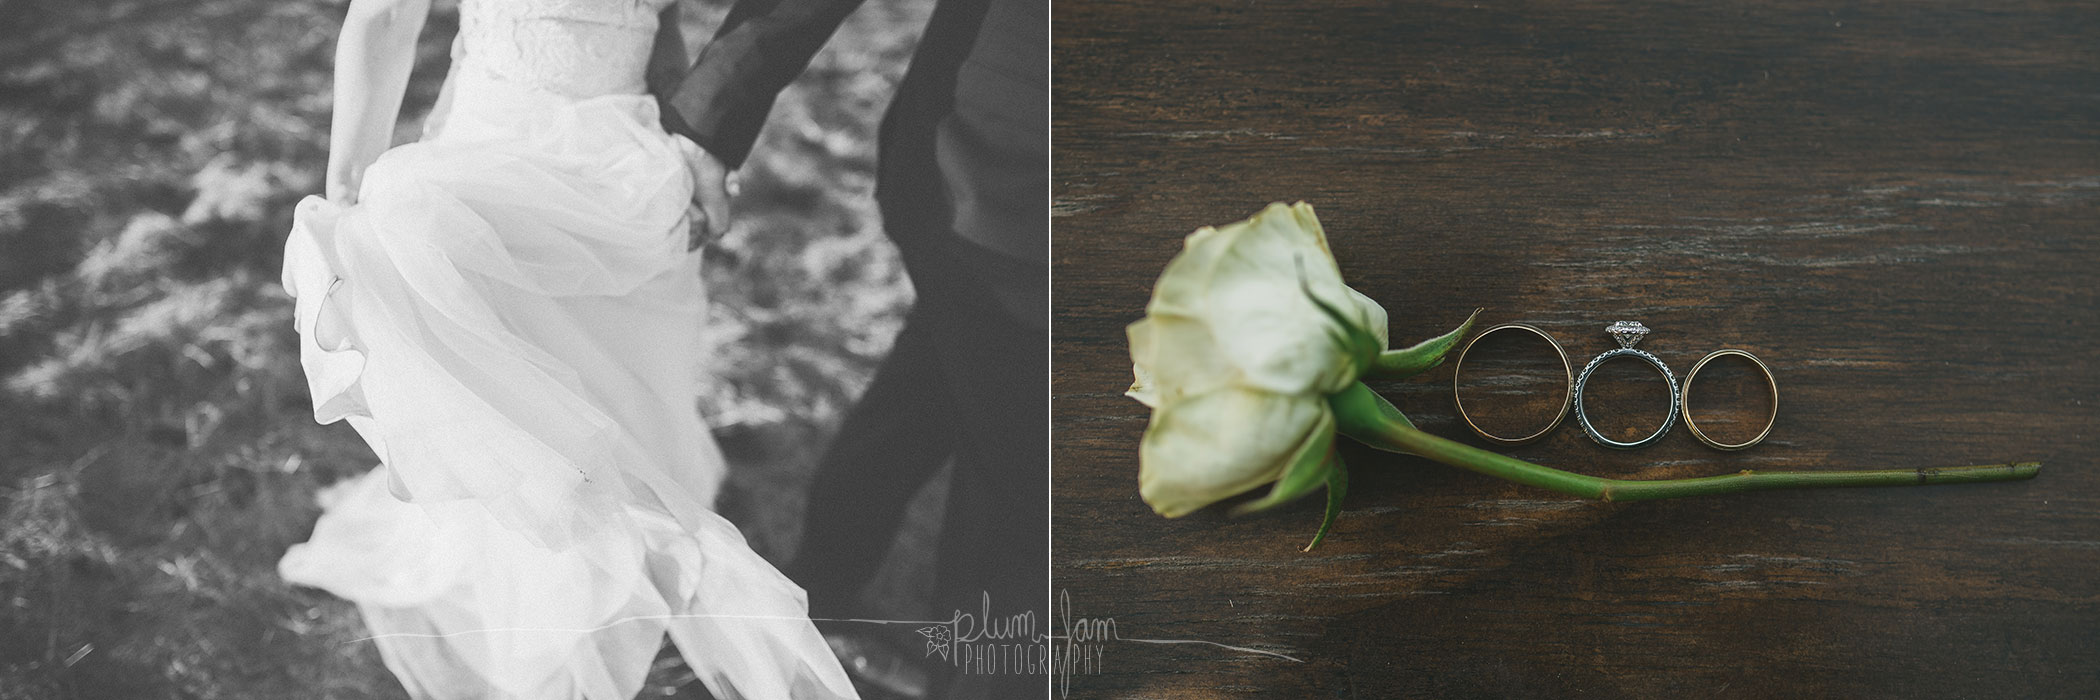 AshleyTylerWedding-Blog-031-PlumJamPhotography